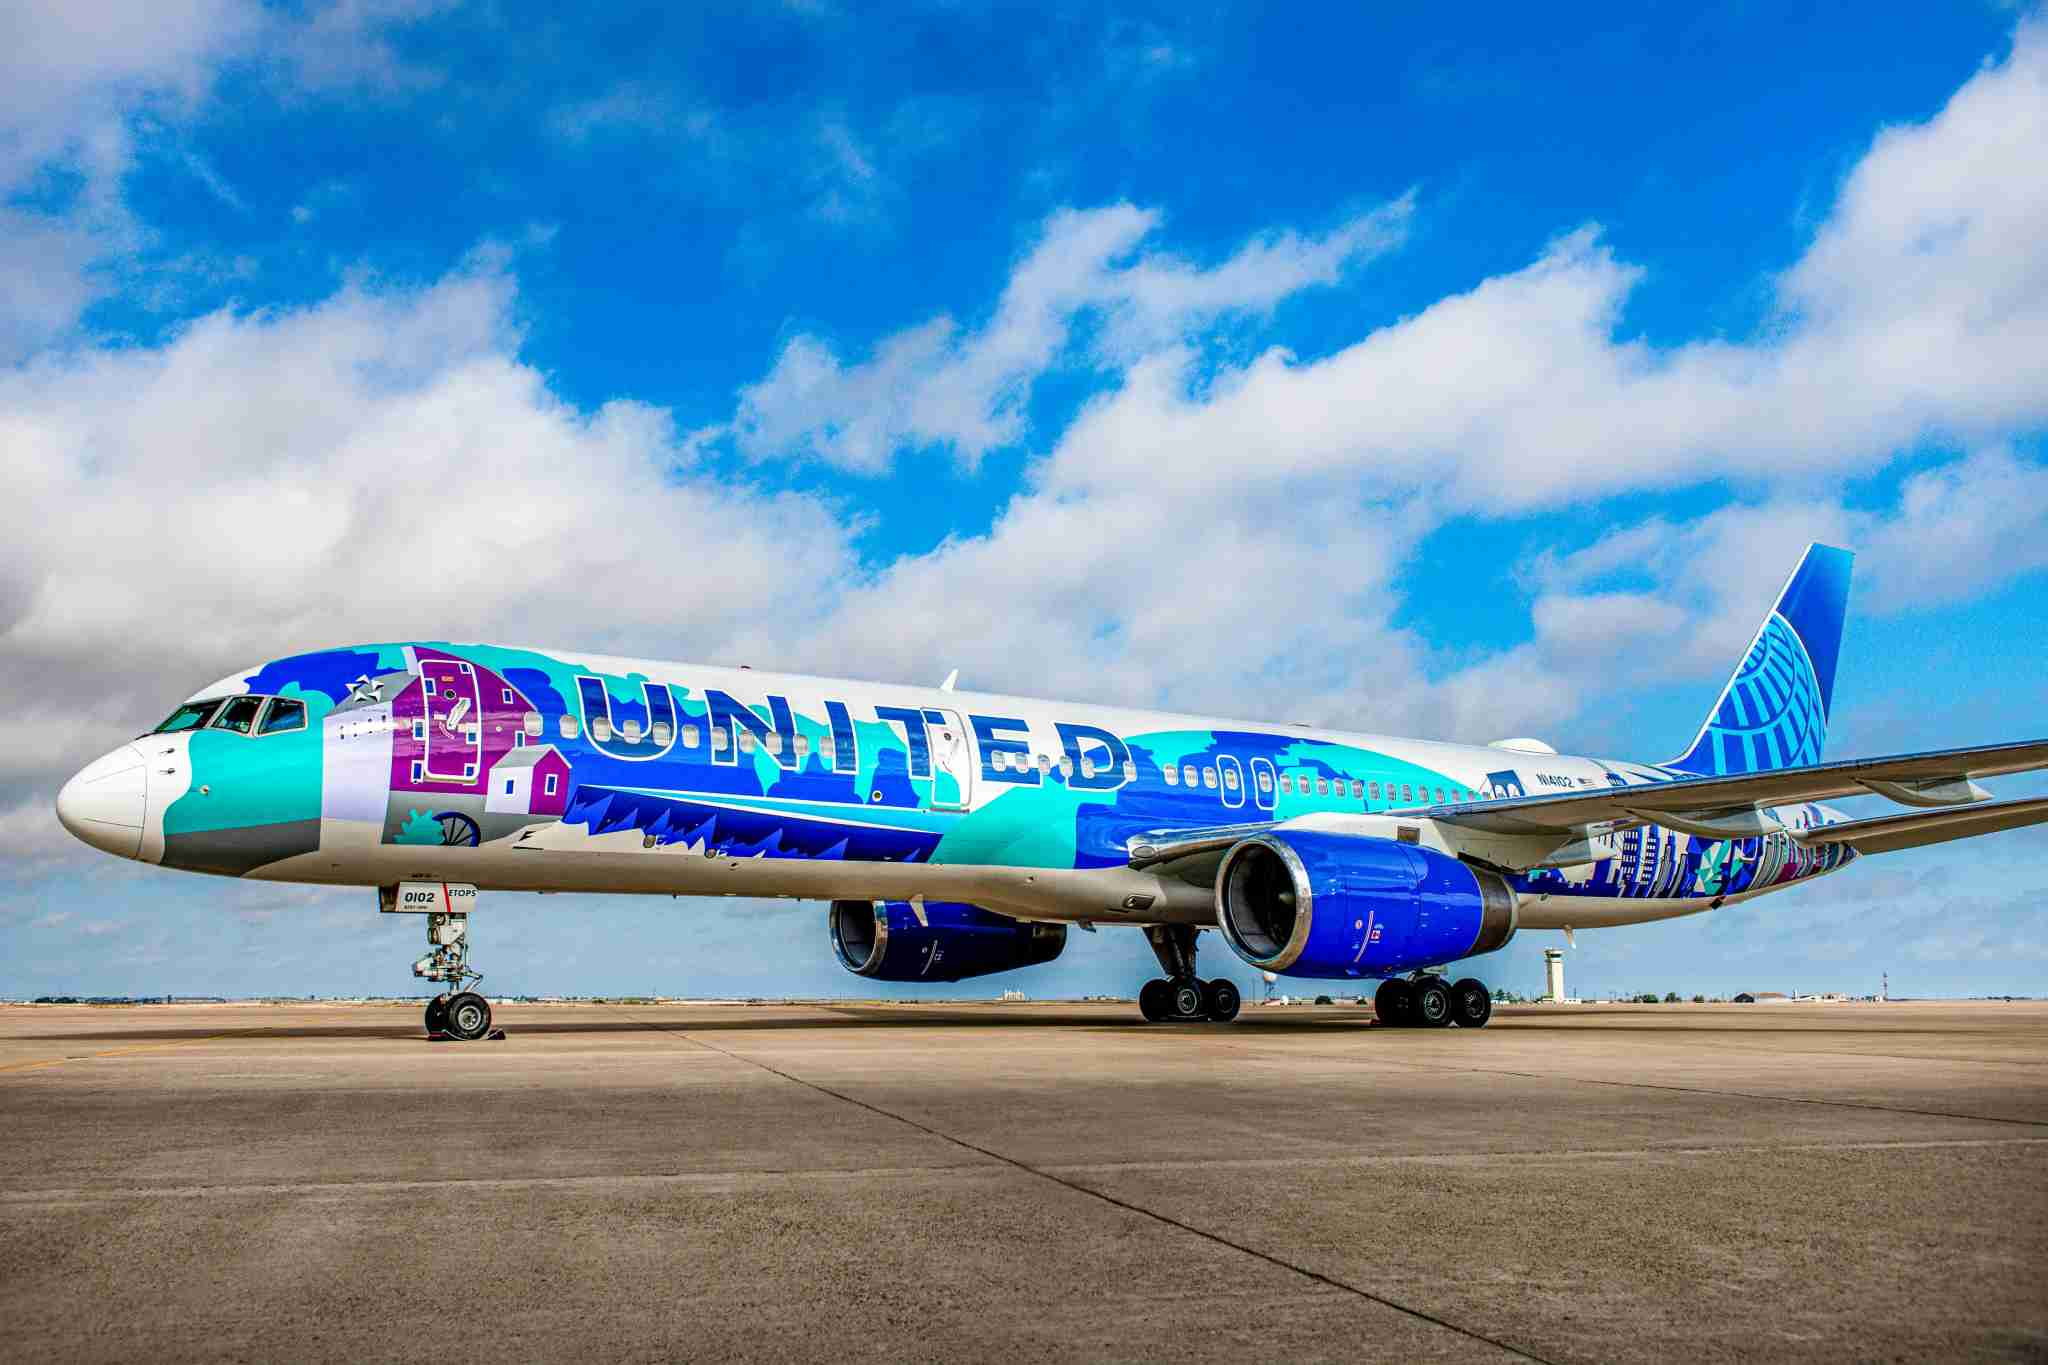 United Airlines added this special livery to one of its Boeing 757s as part of its